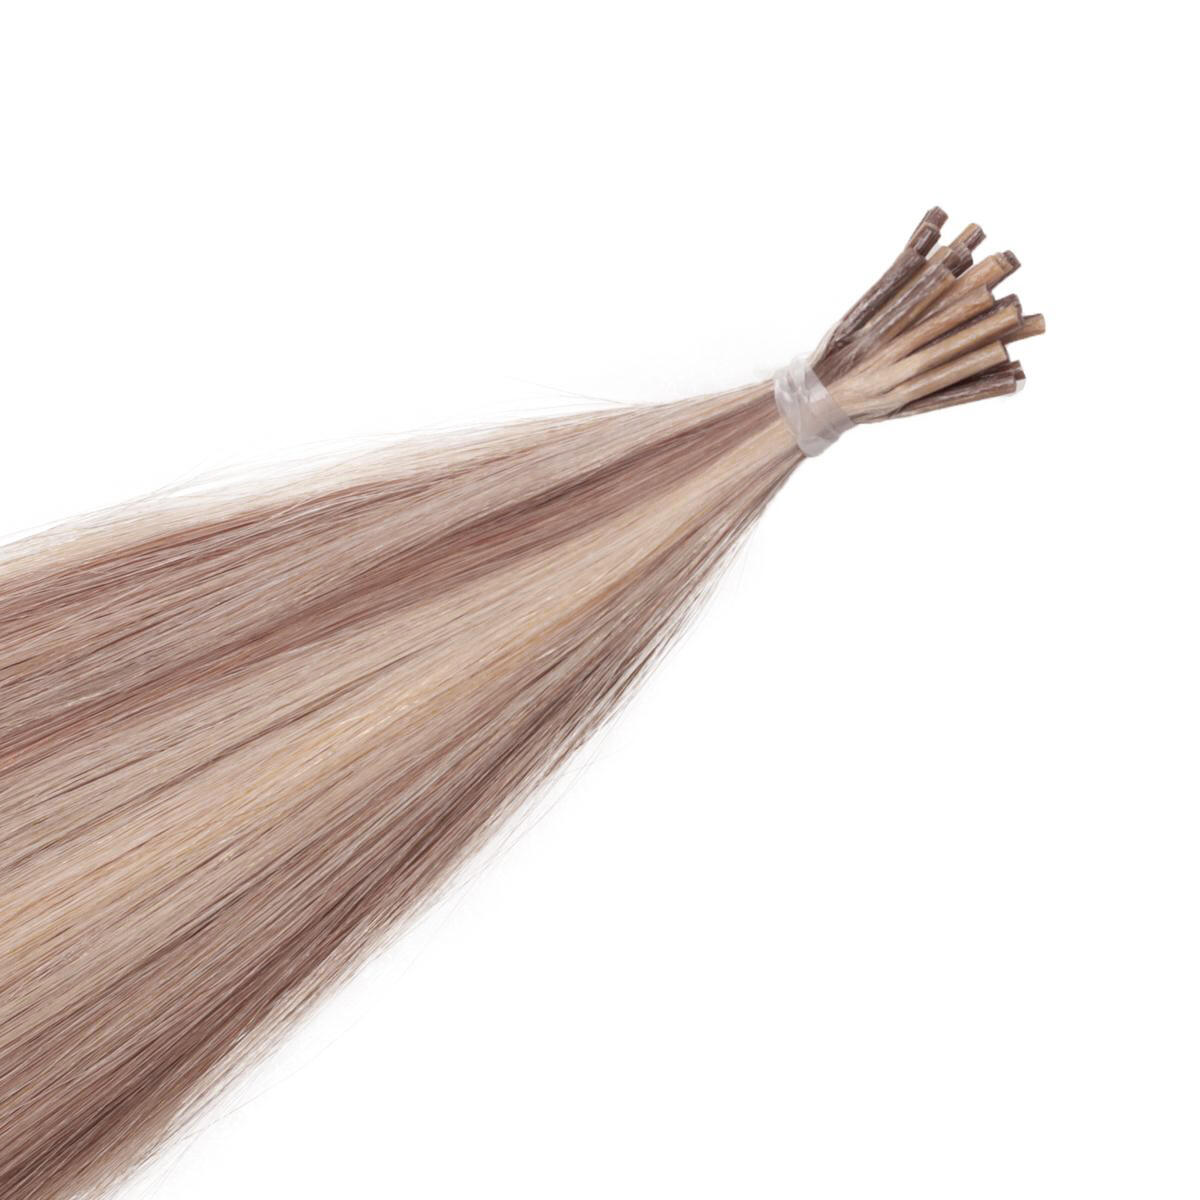 Stick Hair Original Glatt M7.3/10.8 Cendre Ash Blonde Mix 50 cm